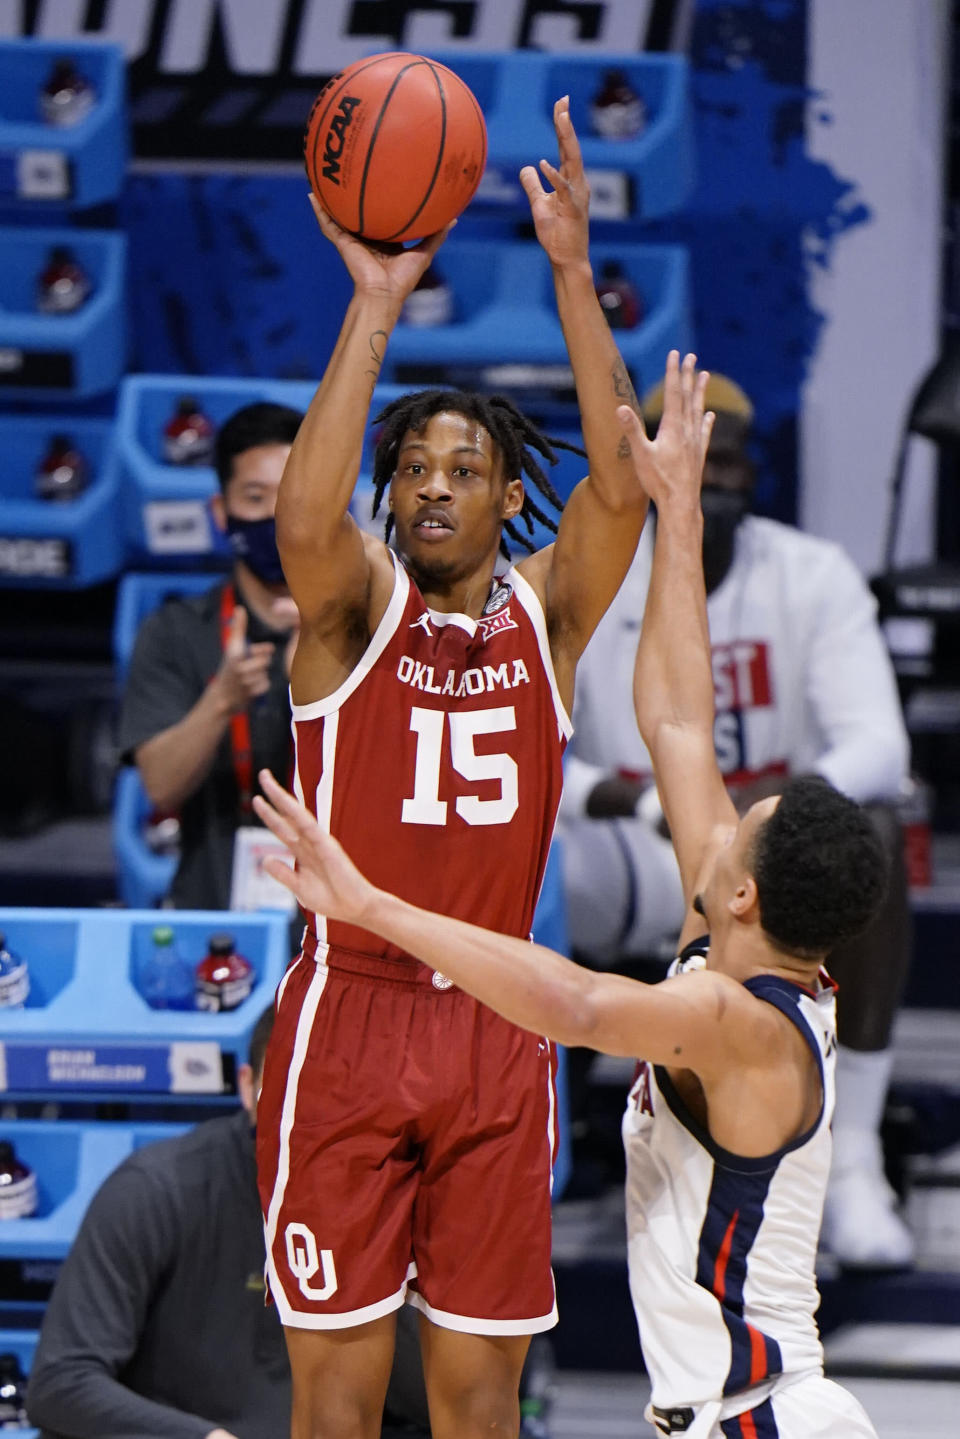 Oklahoma guard Alondes Williams, left, shoots in front of Gonzaga guard Jalen Suggs in the first half of a college basketball game in the second round of the NCAA tournament at Hinkle Fieldhouse in Indianapolis, Monday, March 22, 2021. (AP Photo/AJ Mast)